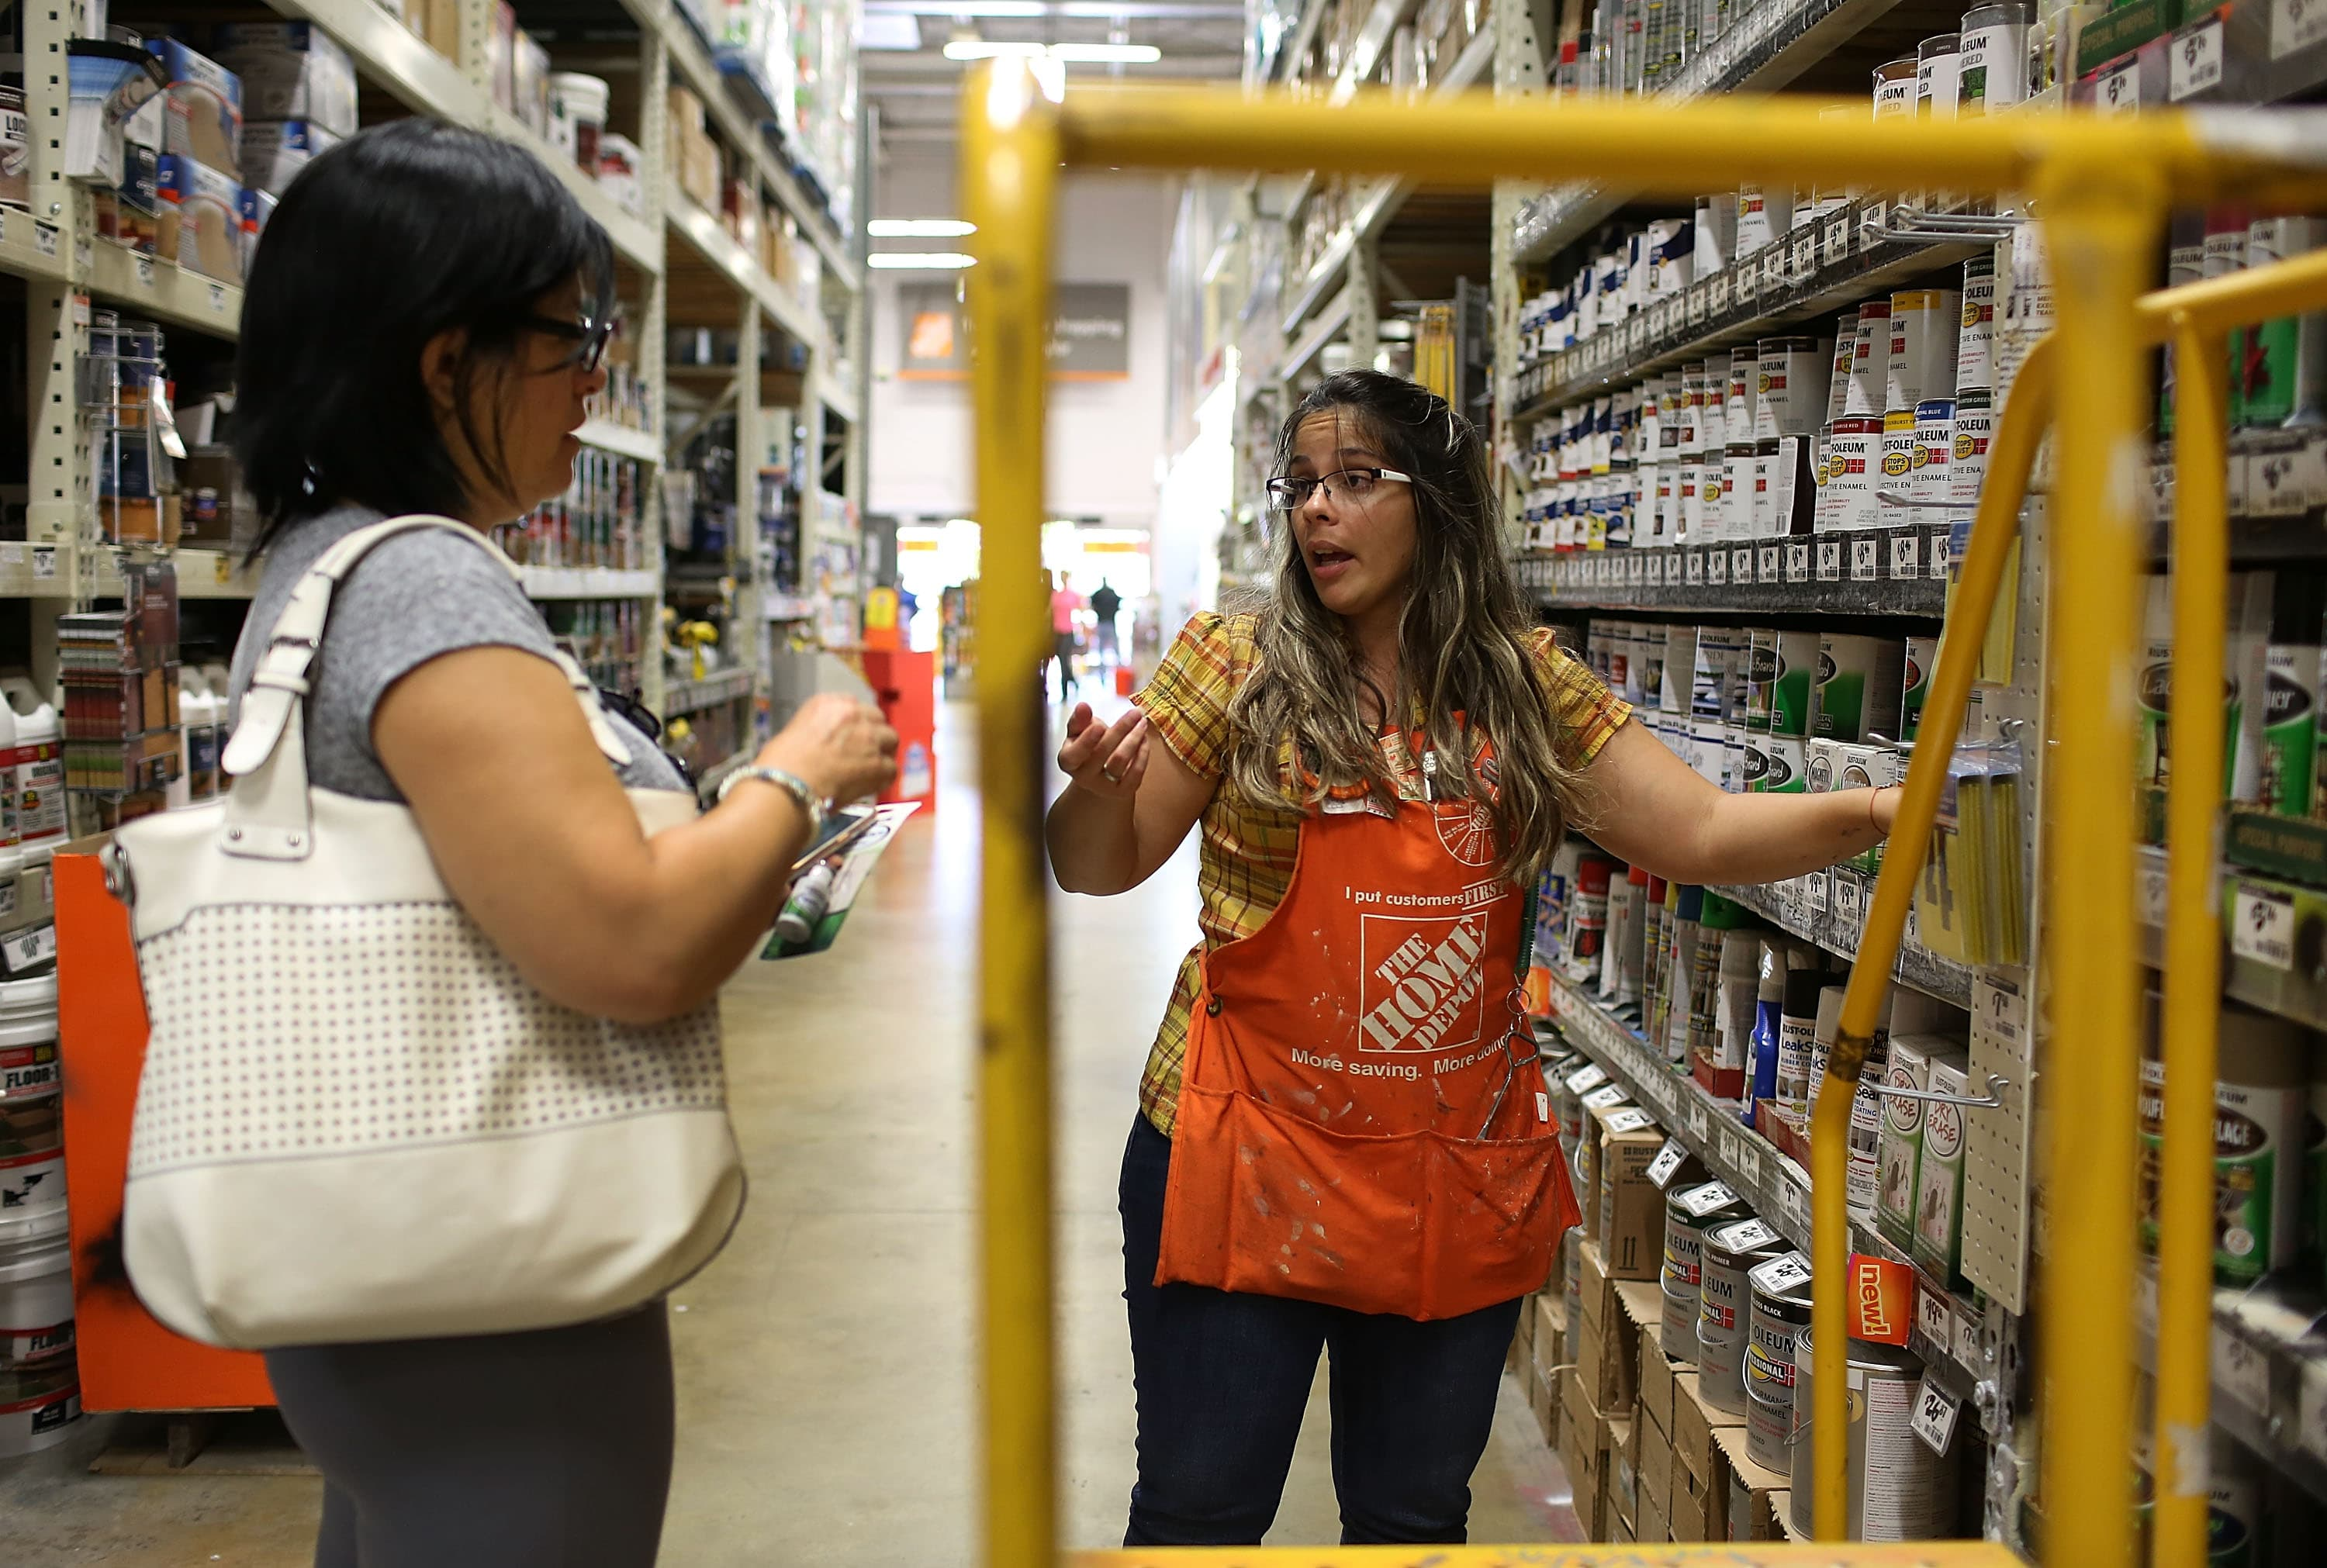 Buy Home Depot before earnings due to booming housing sales Jefferies